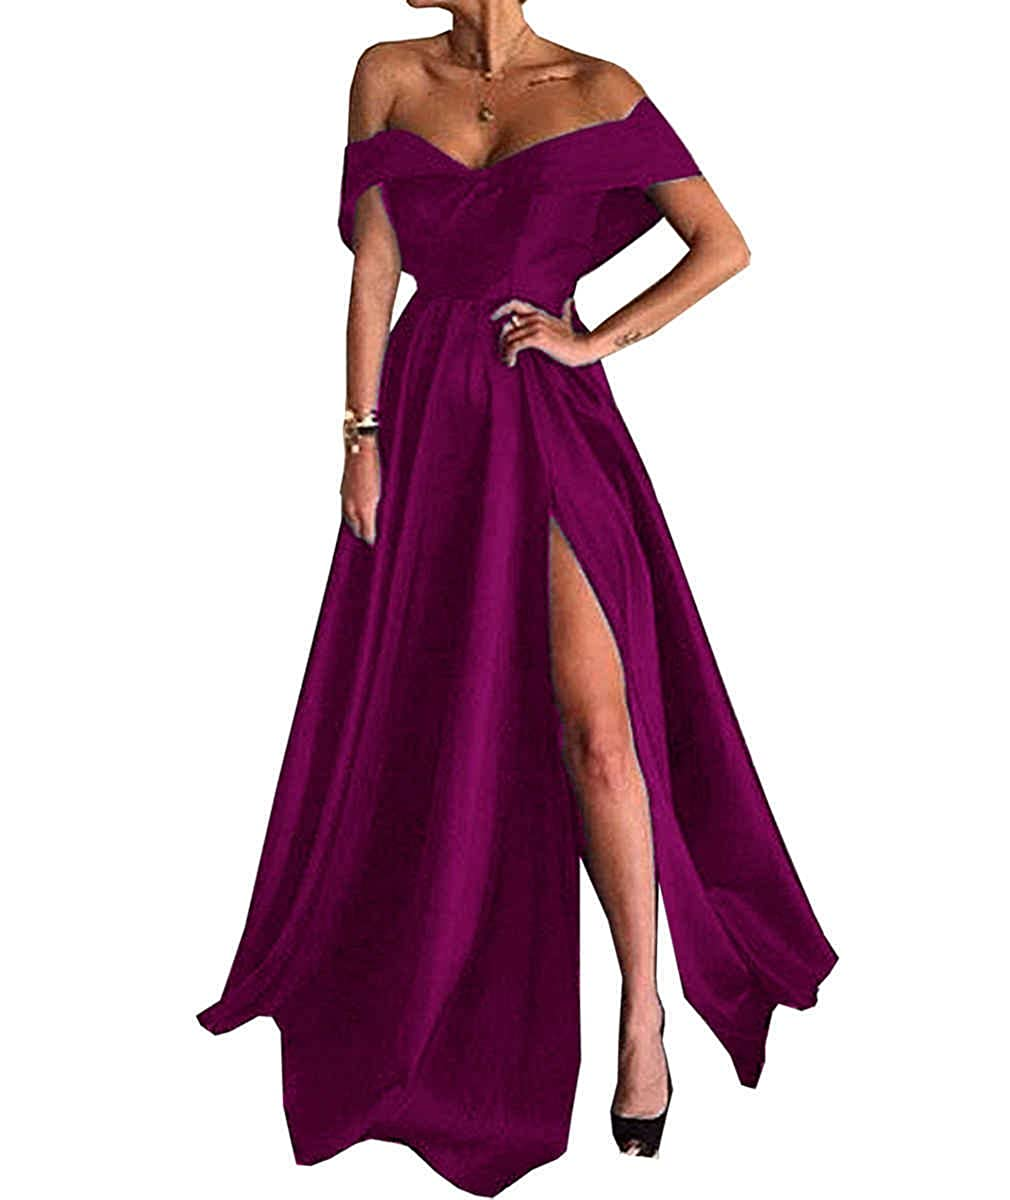 Fuchsia JQLD Womens Long Slit Evening Dress Off Shoulder A Line Satin Prom Cocktail Gown